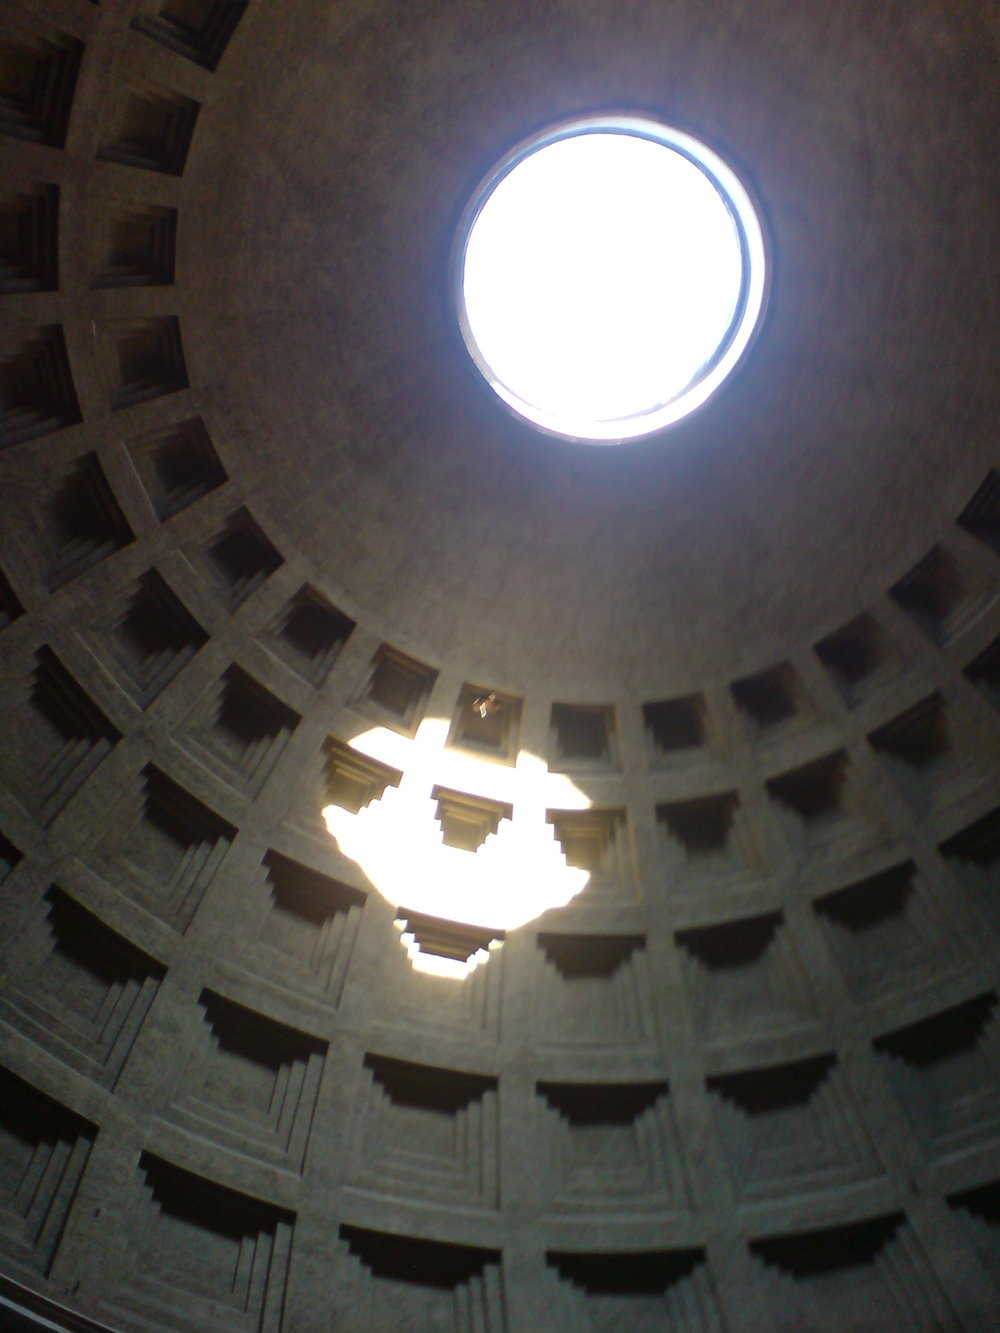 Historical structures, here the Pantheon, Rome